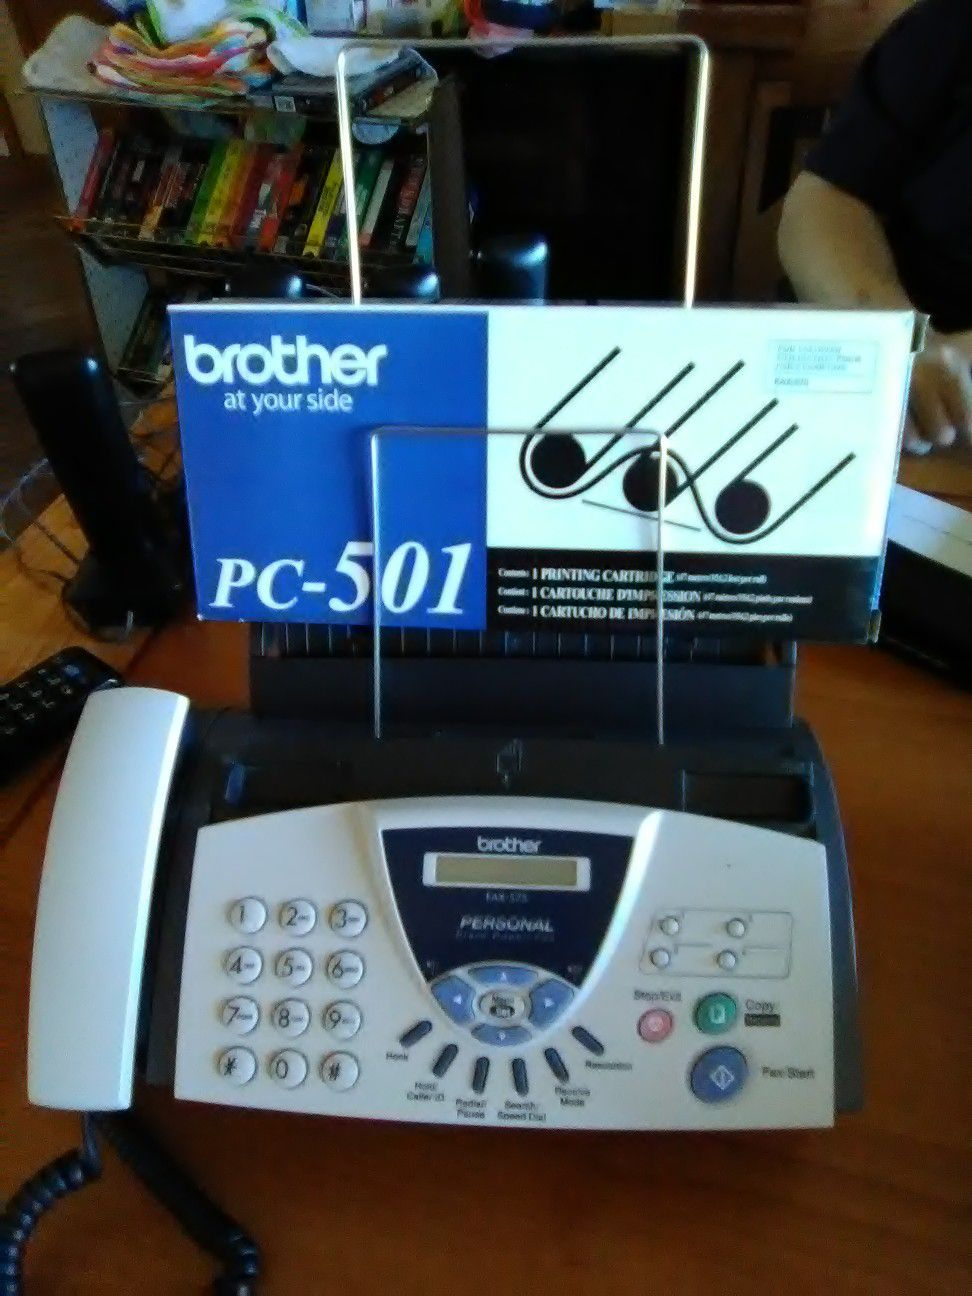 Telephones and fax machine are in good condition